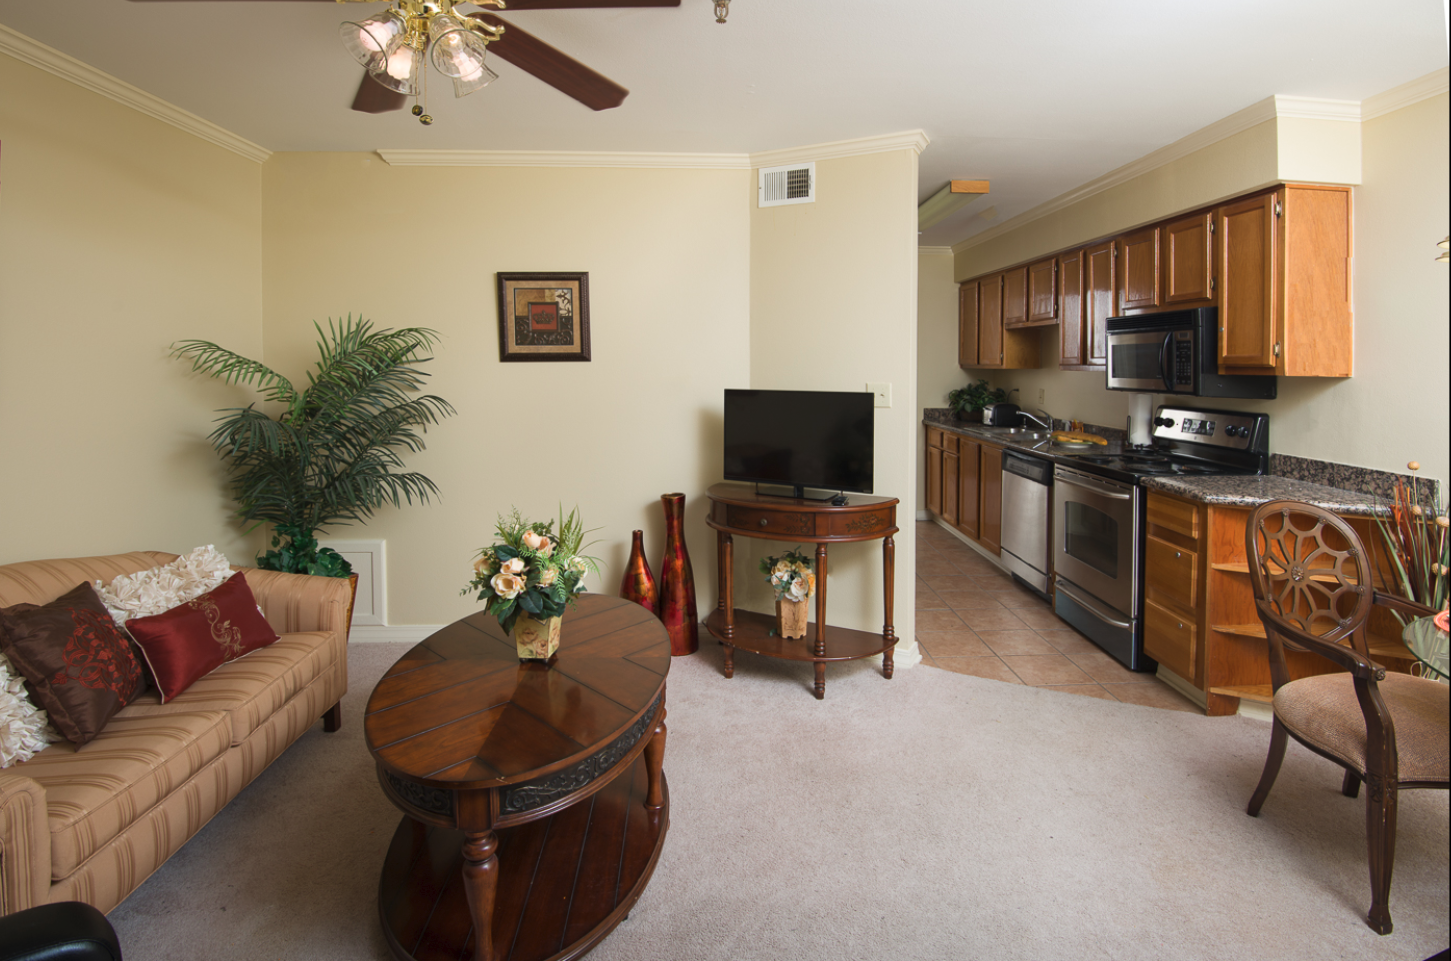 The Gables at Spring Lake Assisted Living [Senior Care Centers] image 3